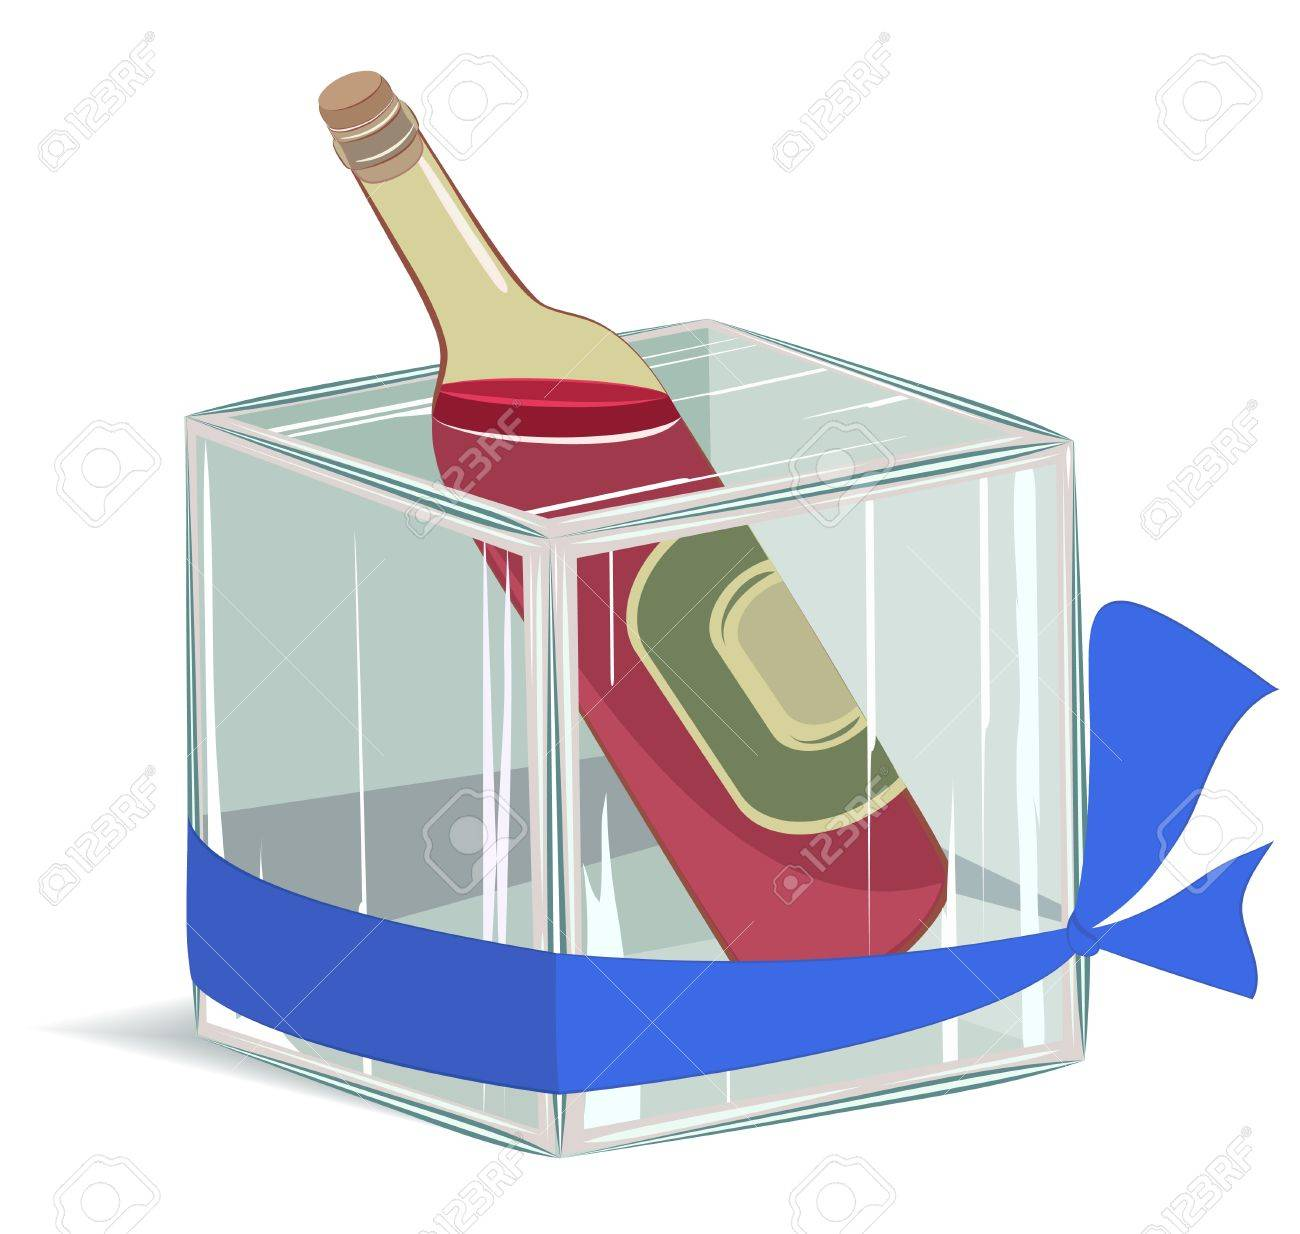 Bottle of wine in ice cube. no transparency, EPS8 layered illustration Stock Vector - 11552996